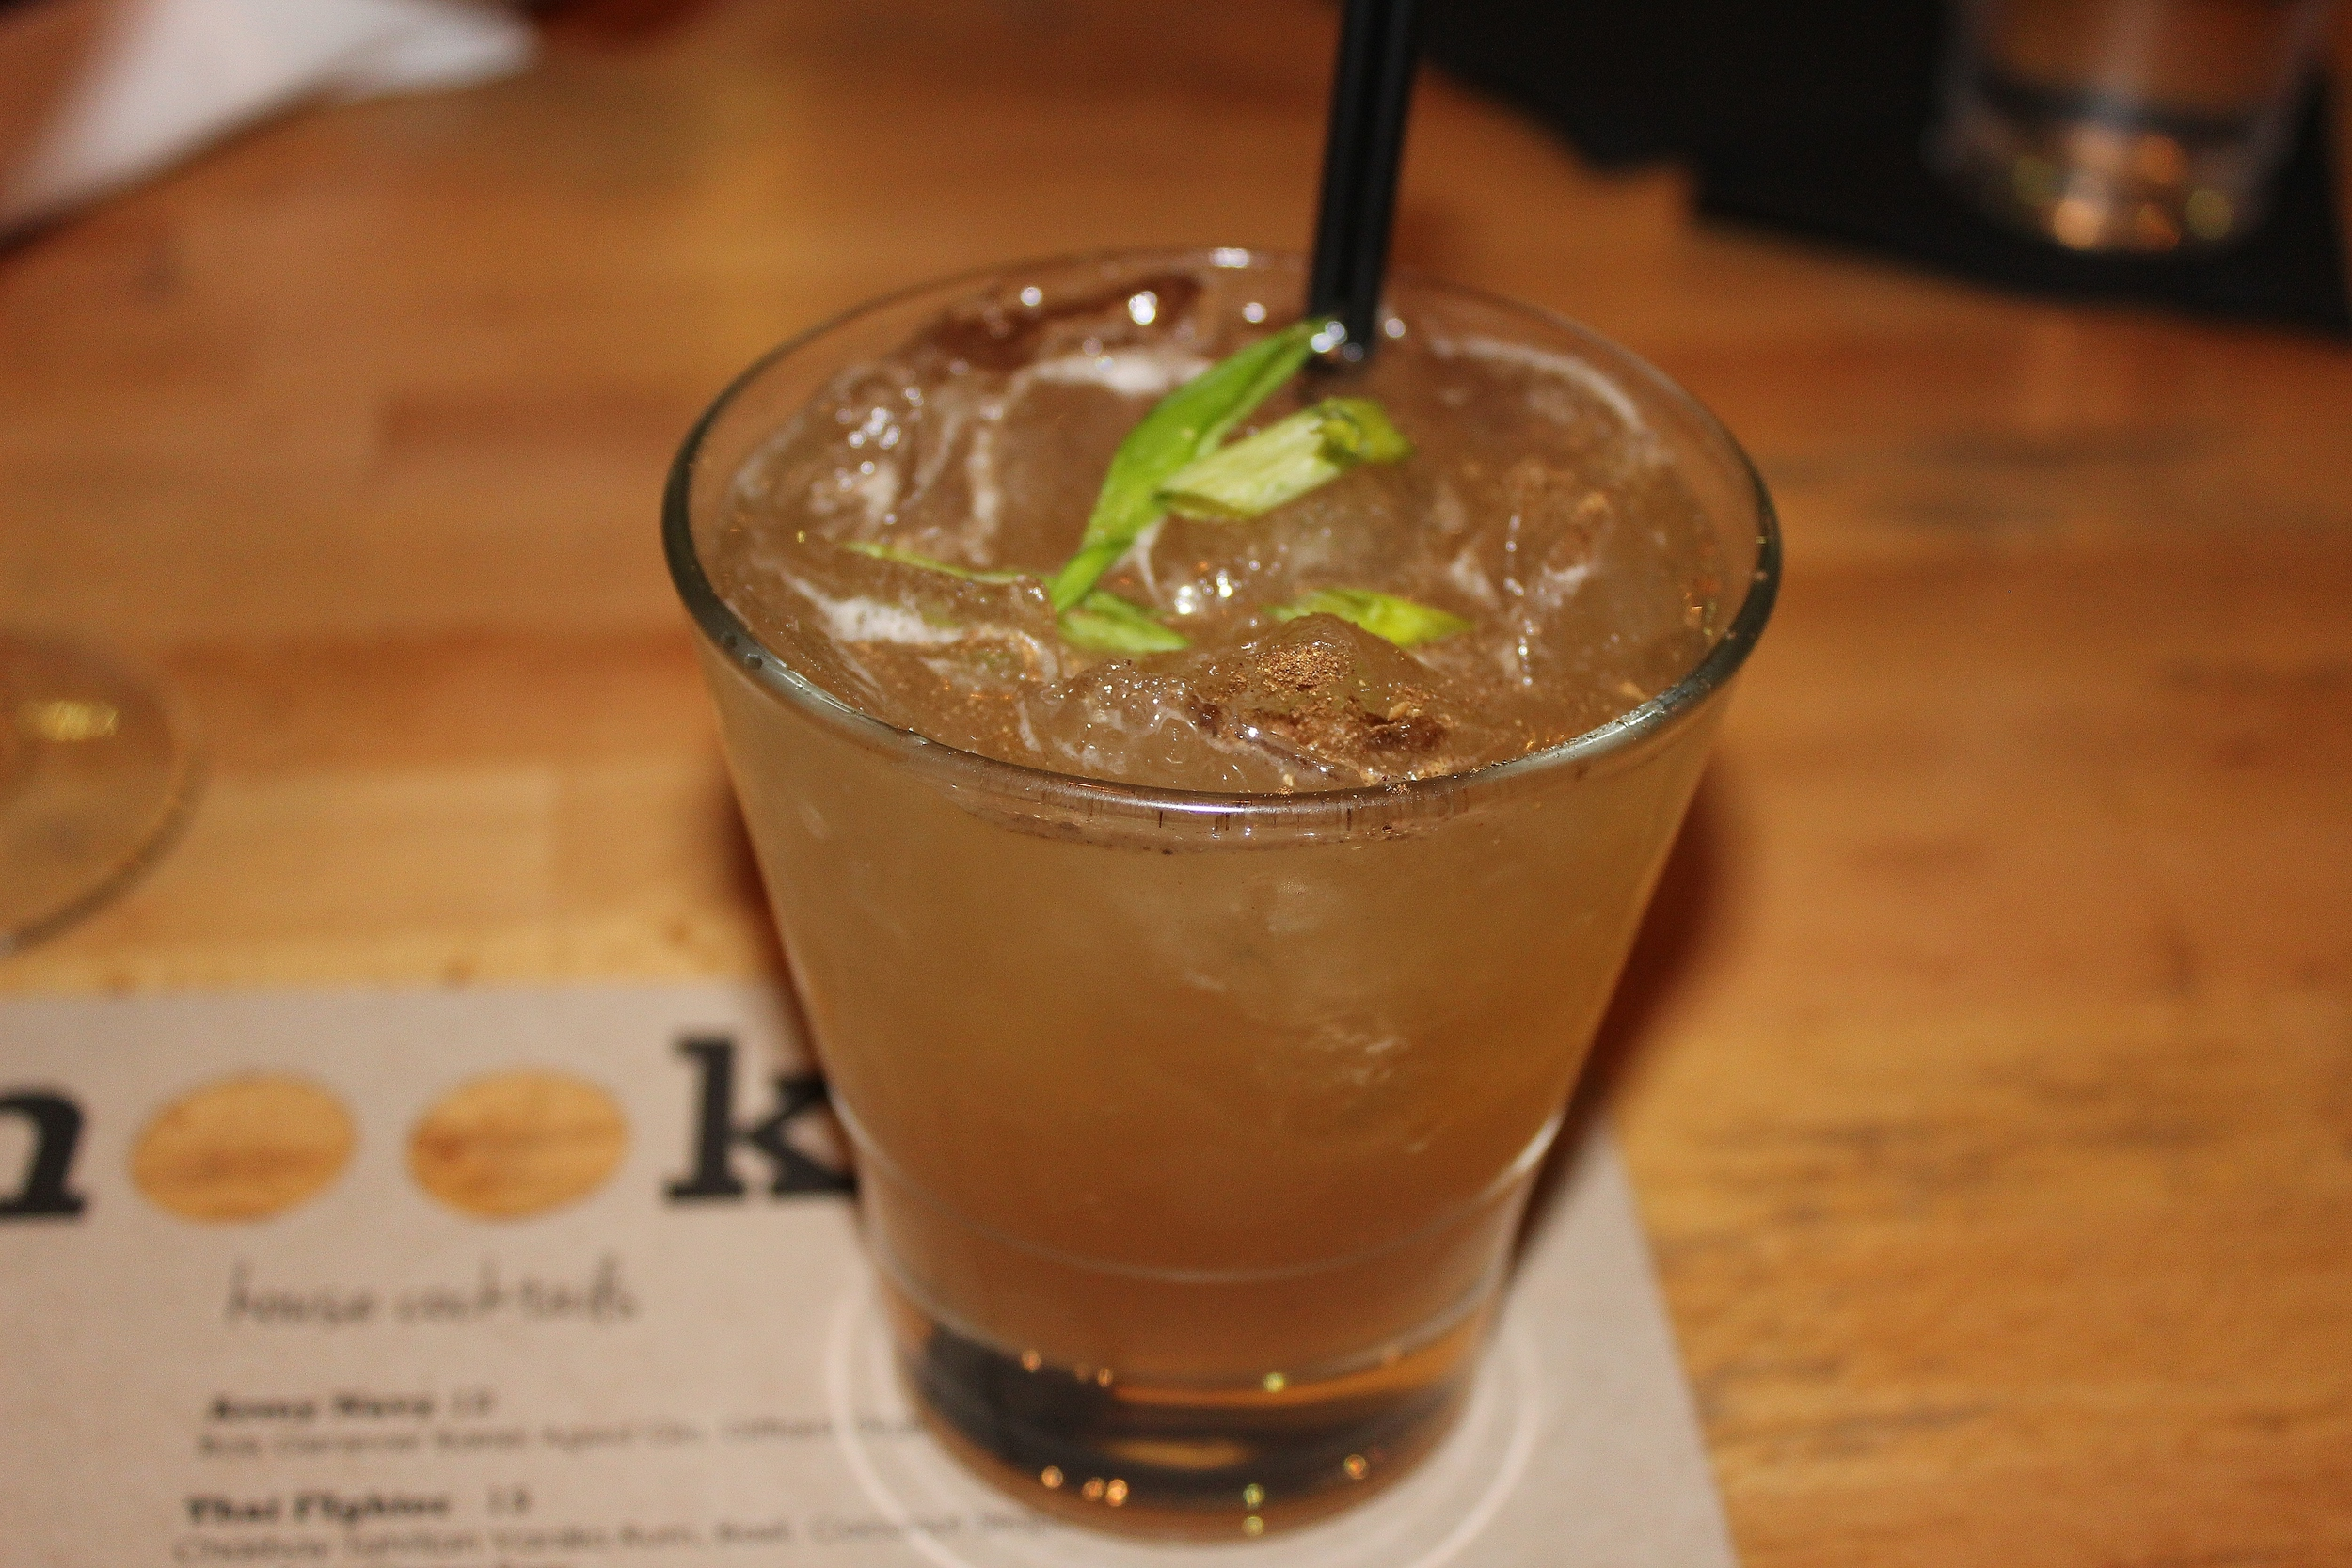 Peking Duck (duck fat-infused Booker's Bourbon with Canton Ginger, five-spice simple syrup, lemon and lime)